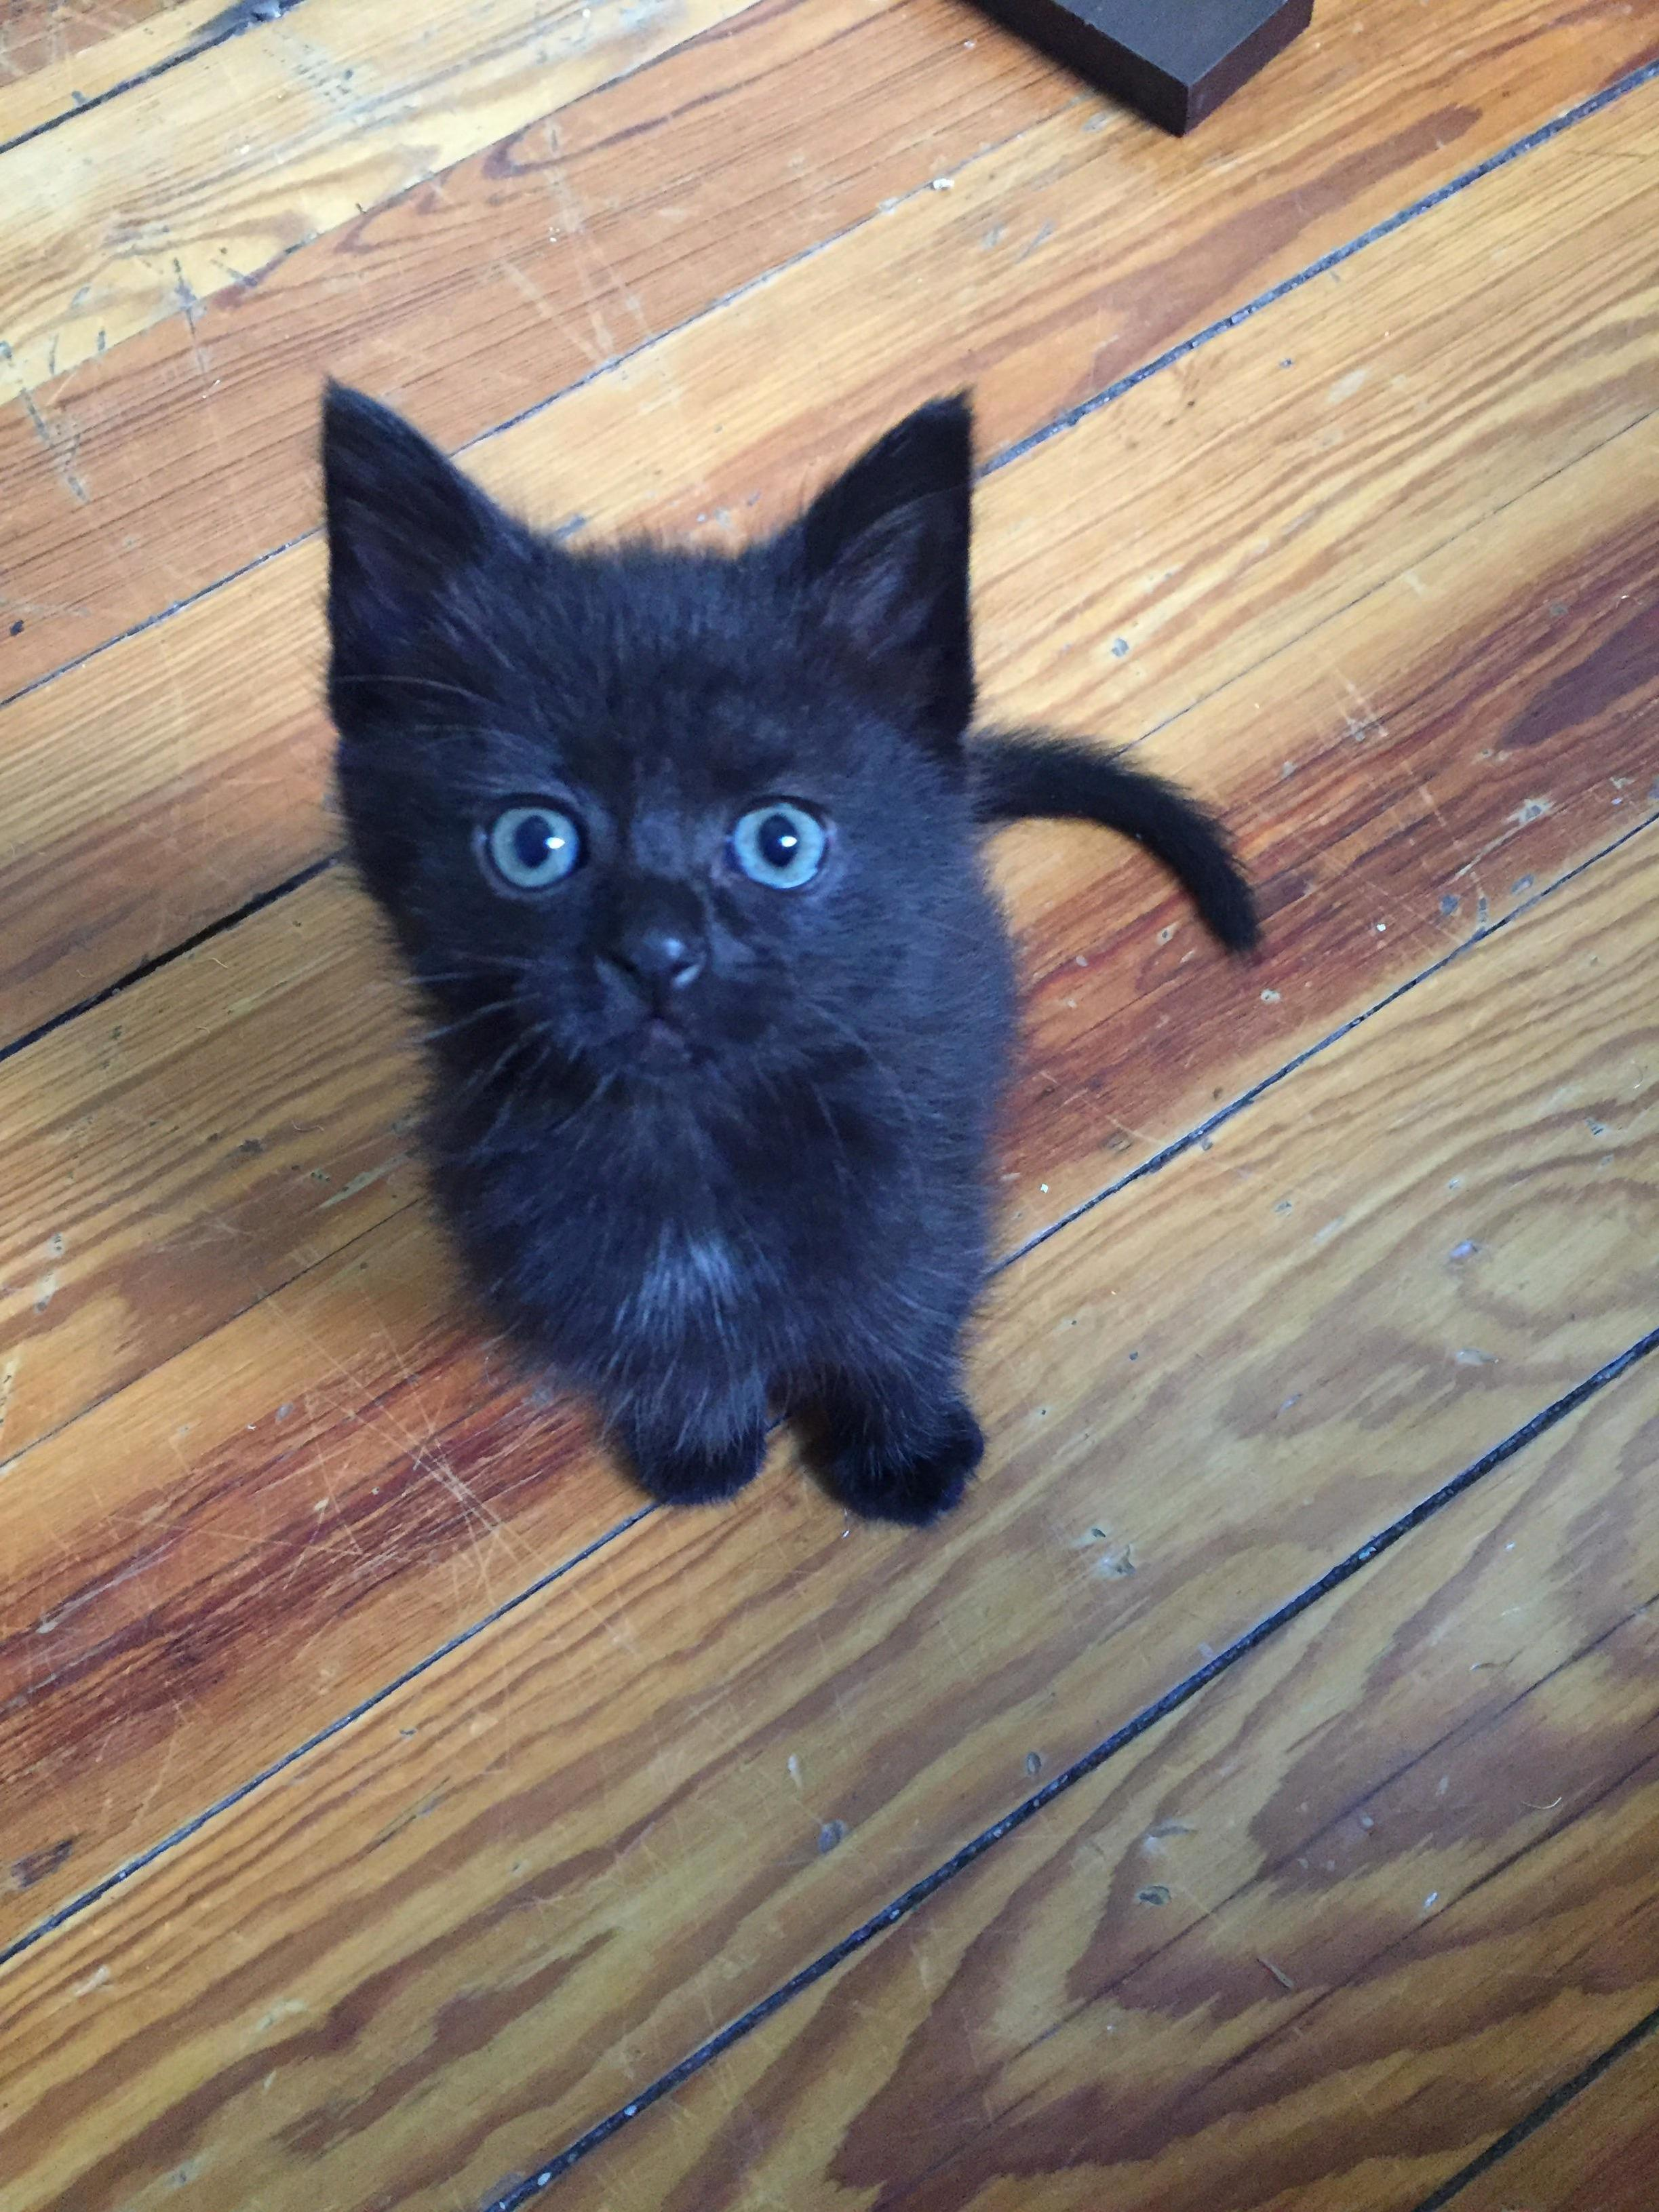 Atomic cake the foster kitten